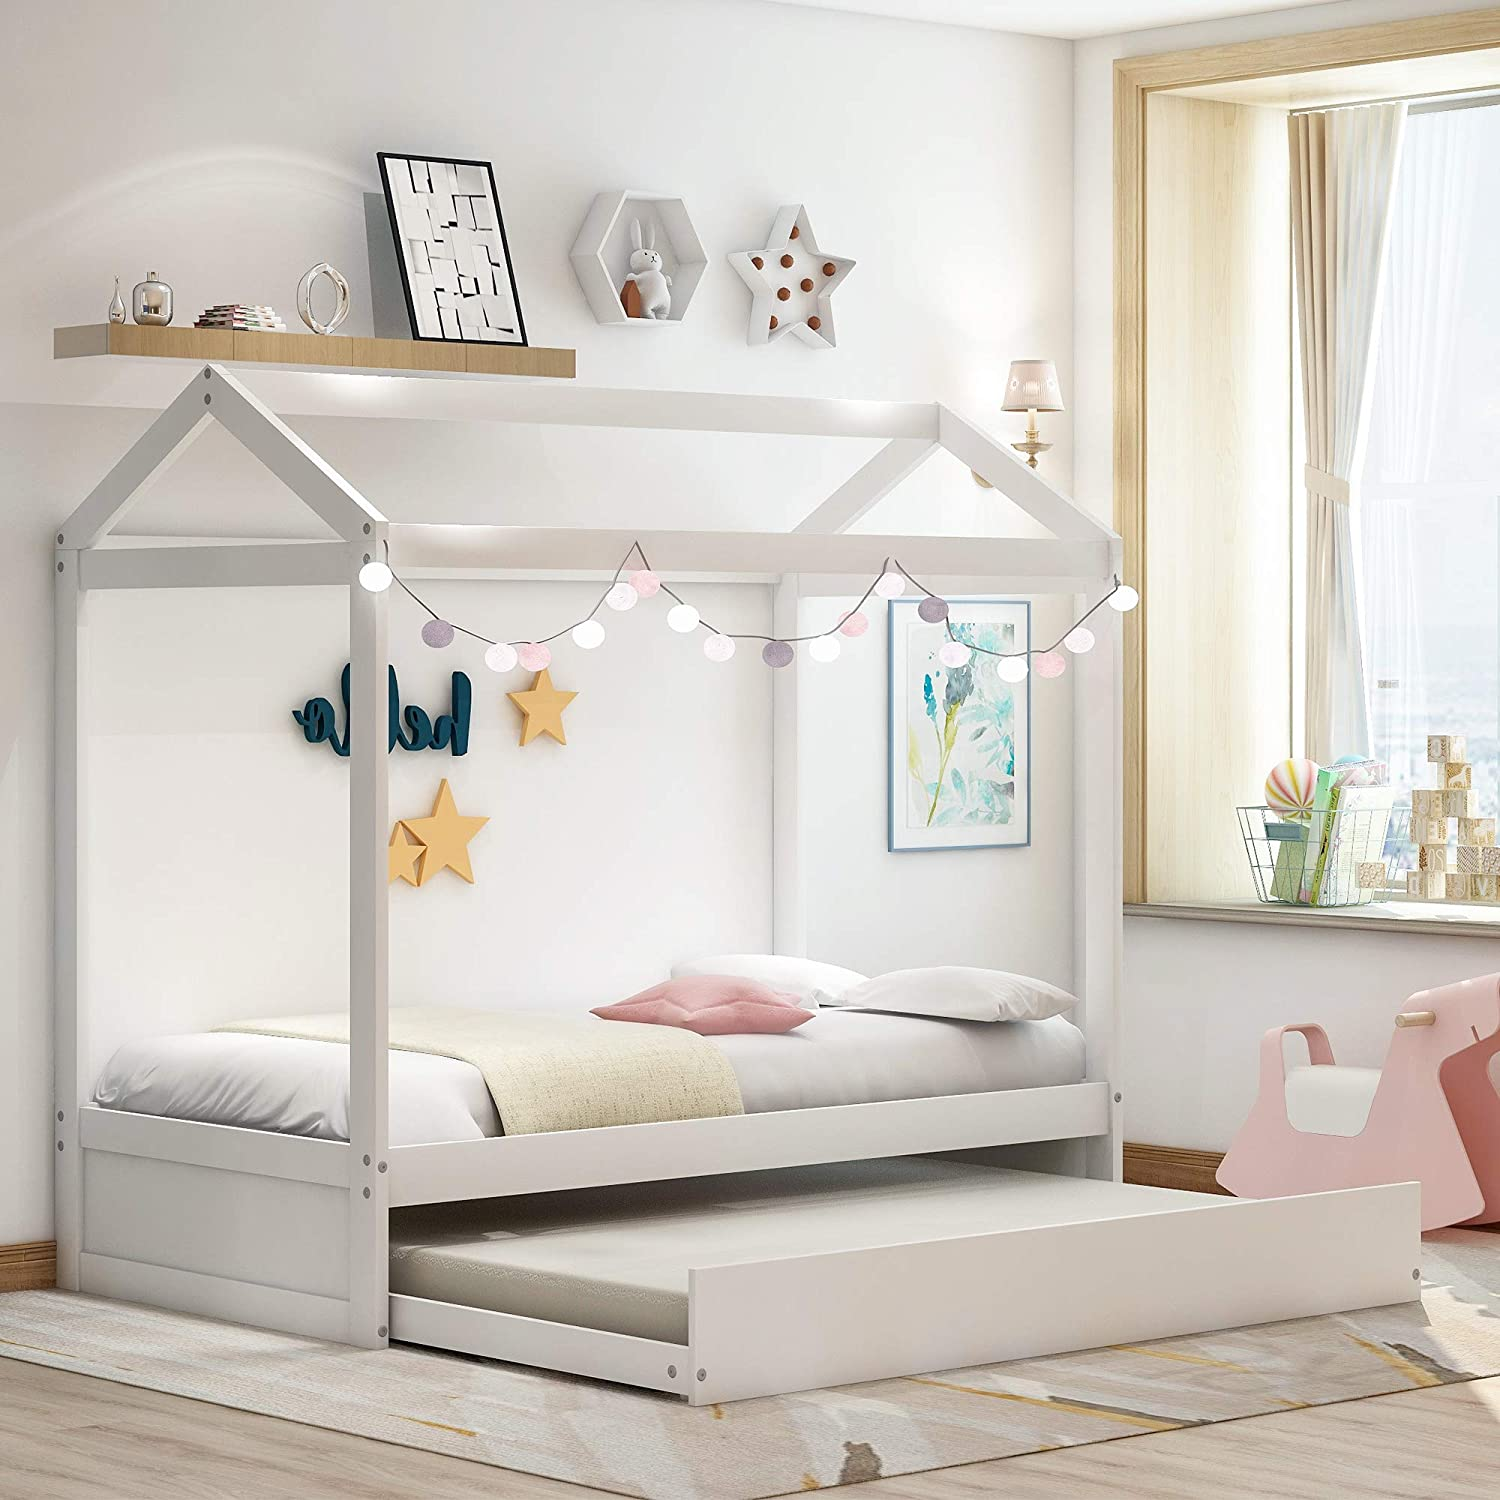 Twin Daybed With Trundle And Roof Wood Twin Size House Bed Frame For Kids Bedroom Furniture Premium Wood Children Toddler House Bed Frame Twin Size Tent Bed Floor Bed Can Be Decorated